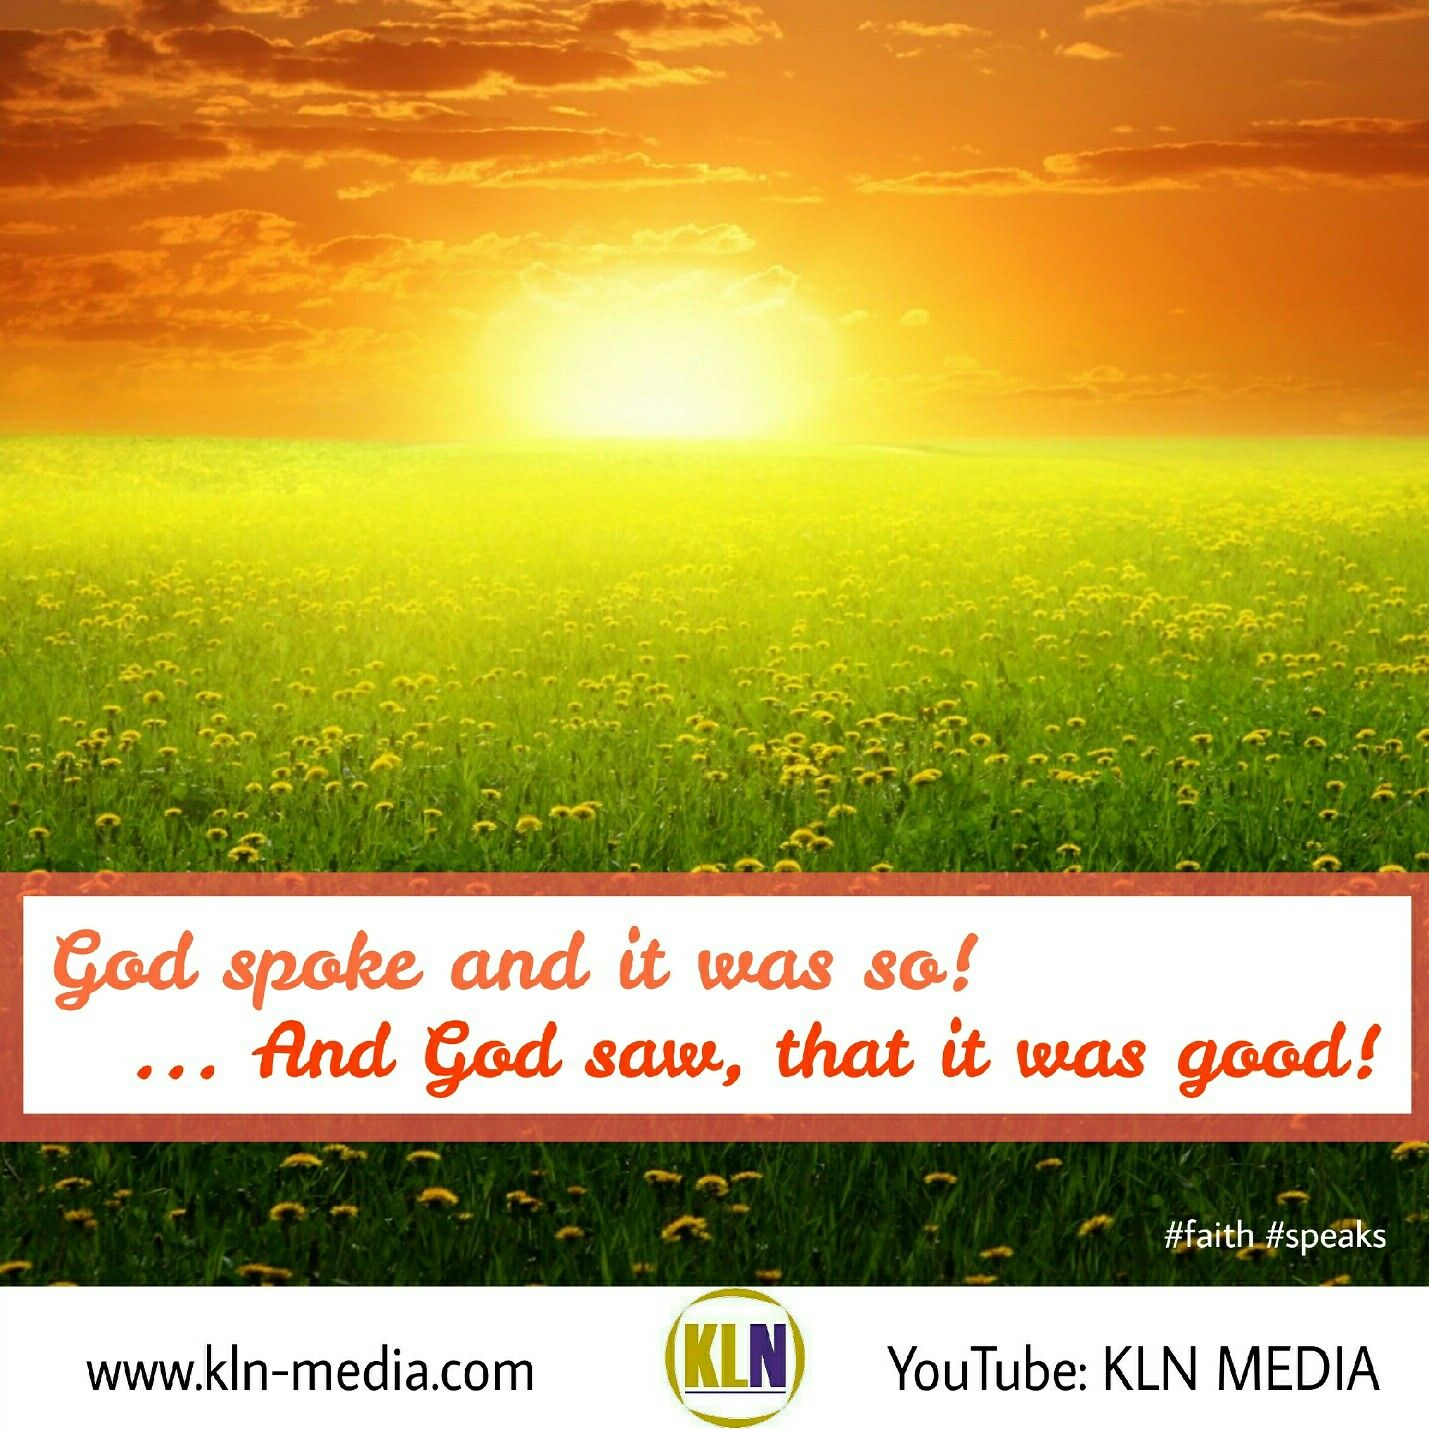 Kingdom Living Now God framed the world that we see, with His wor ...